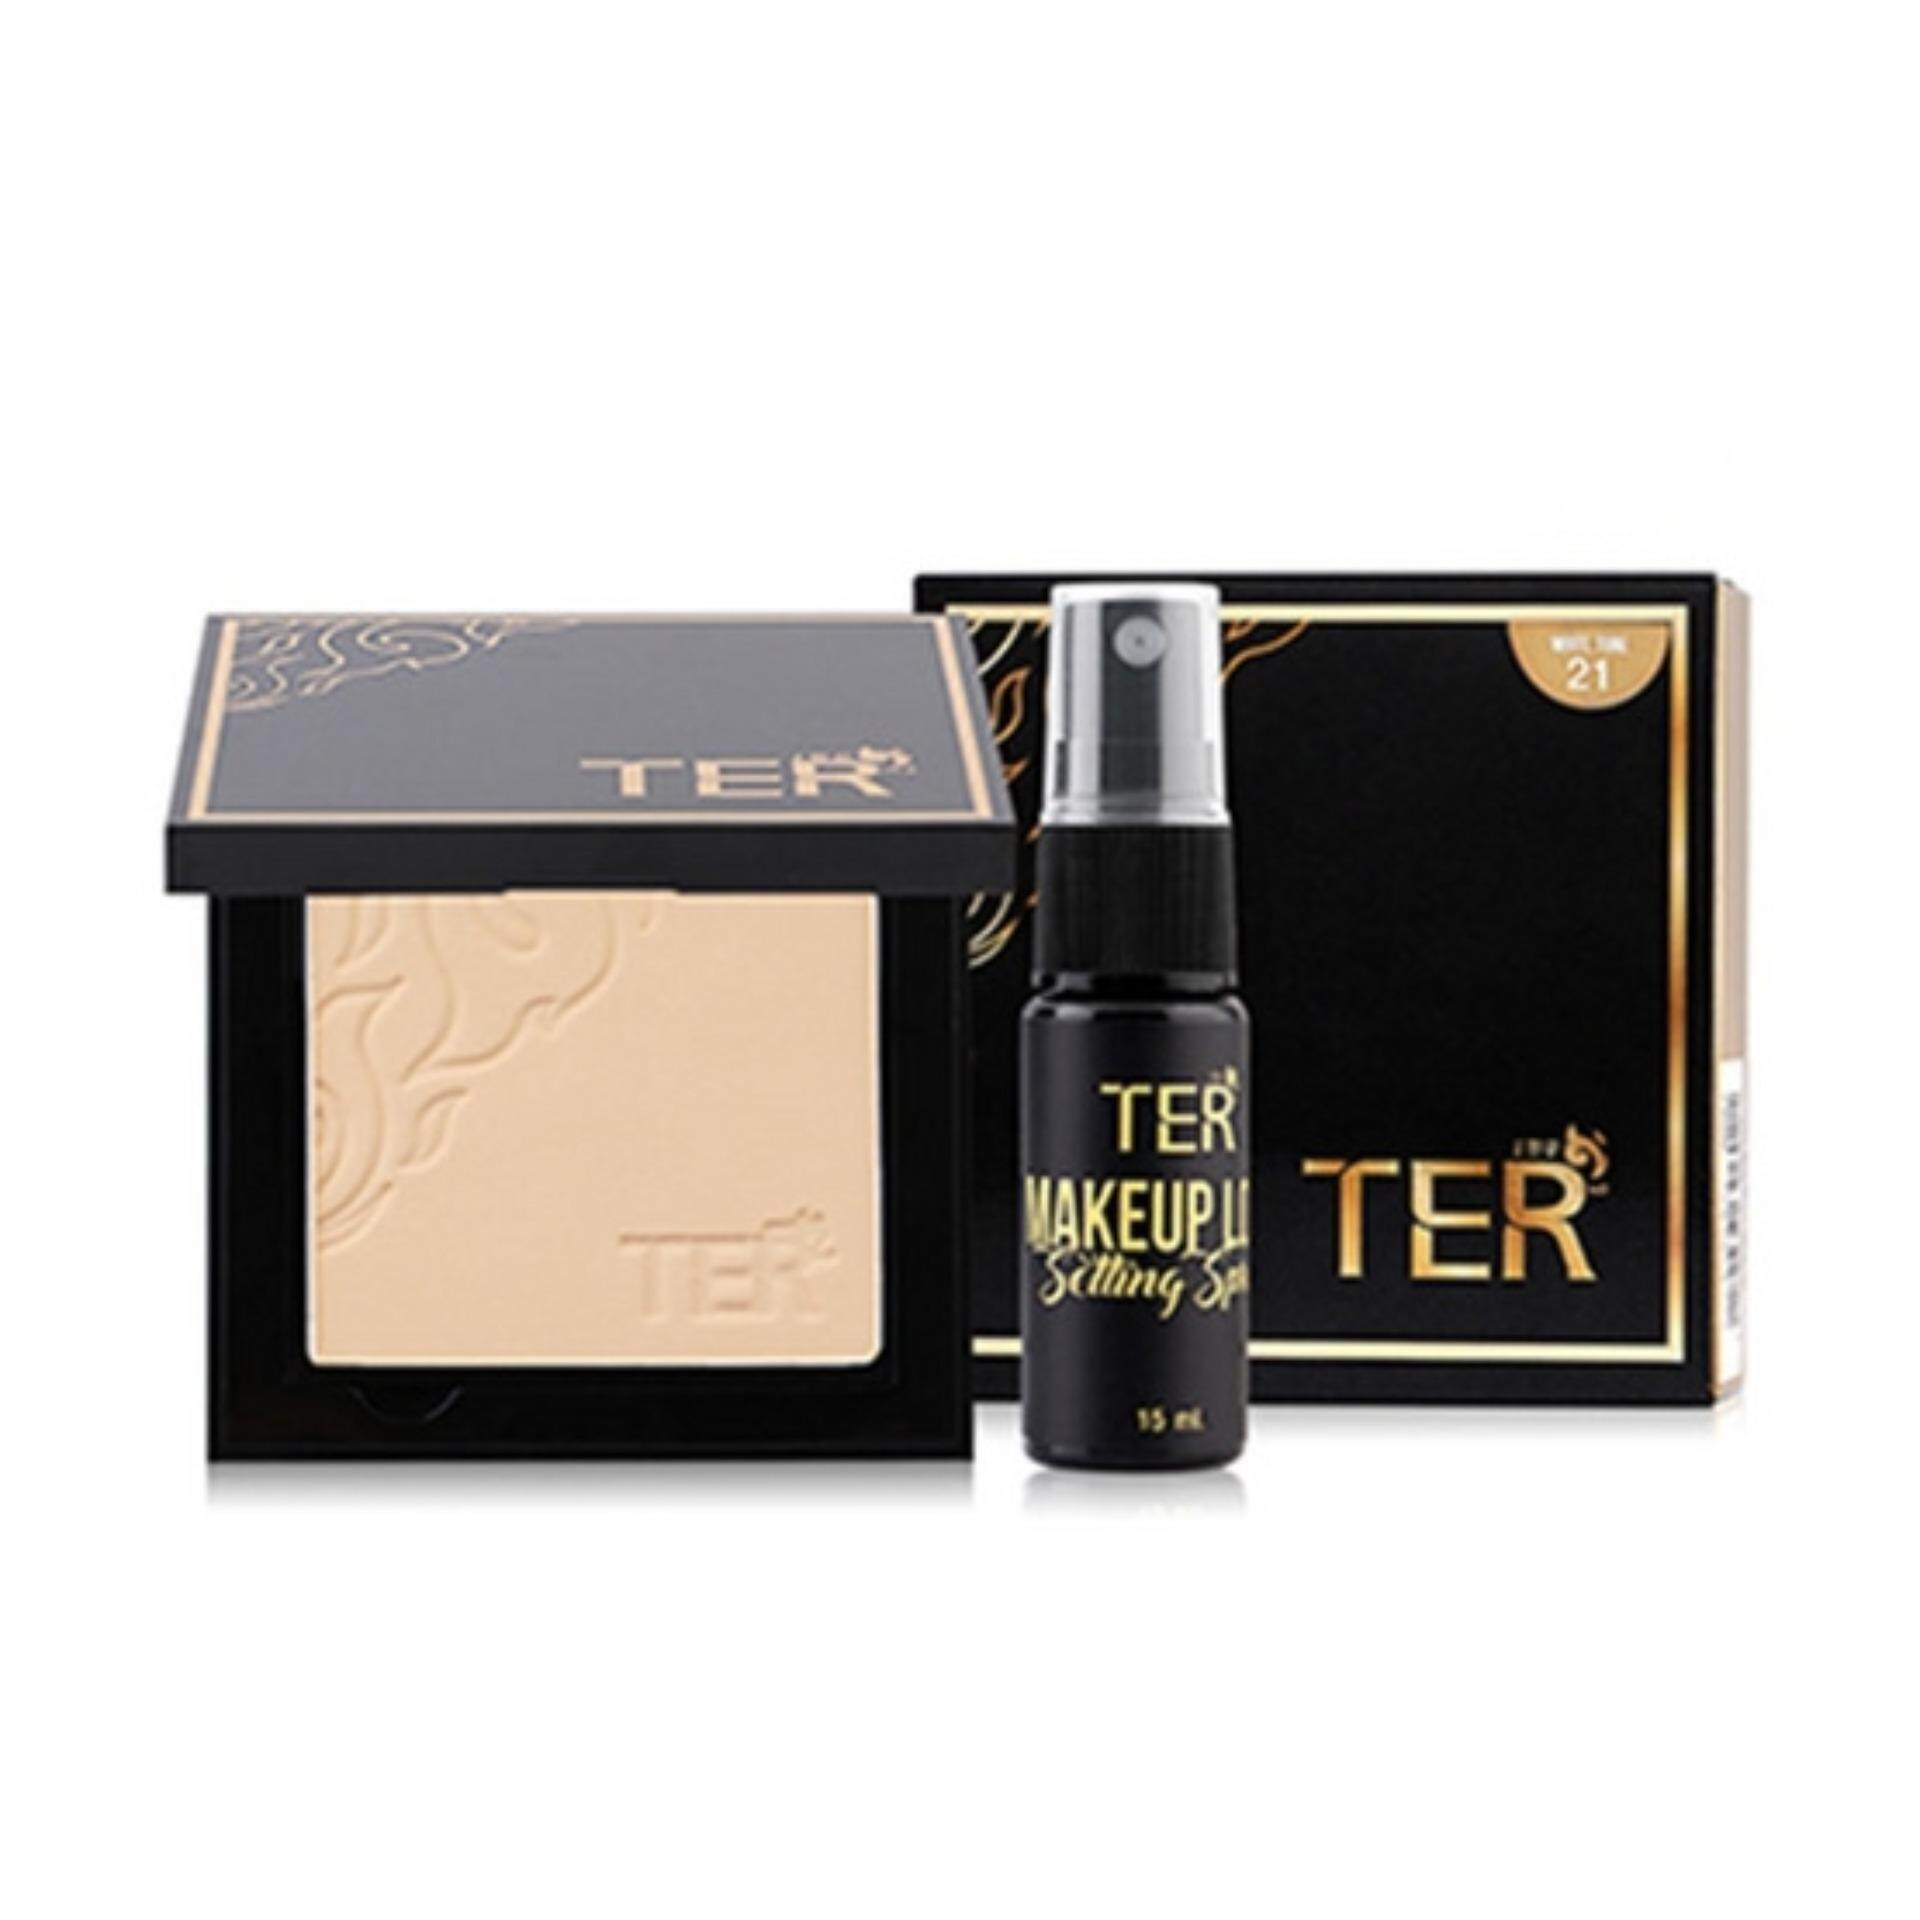 TER UV Professional Makeup Powder Oil Control SPF20 PA+++